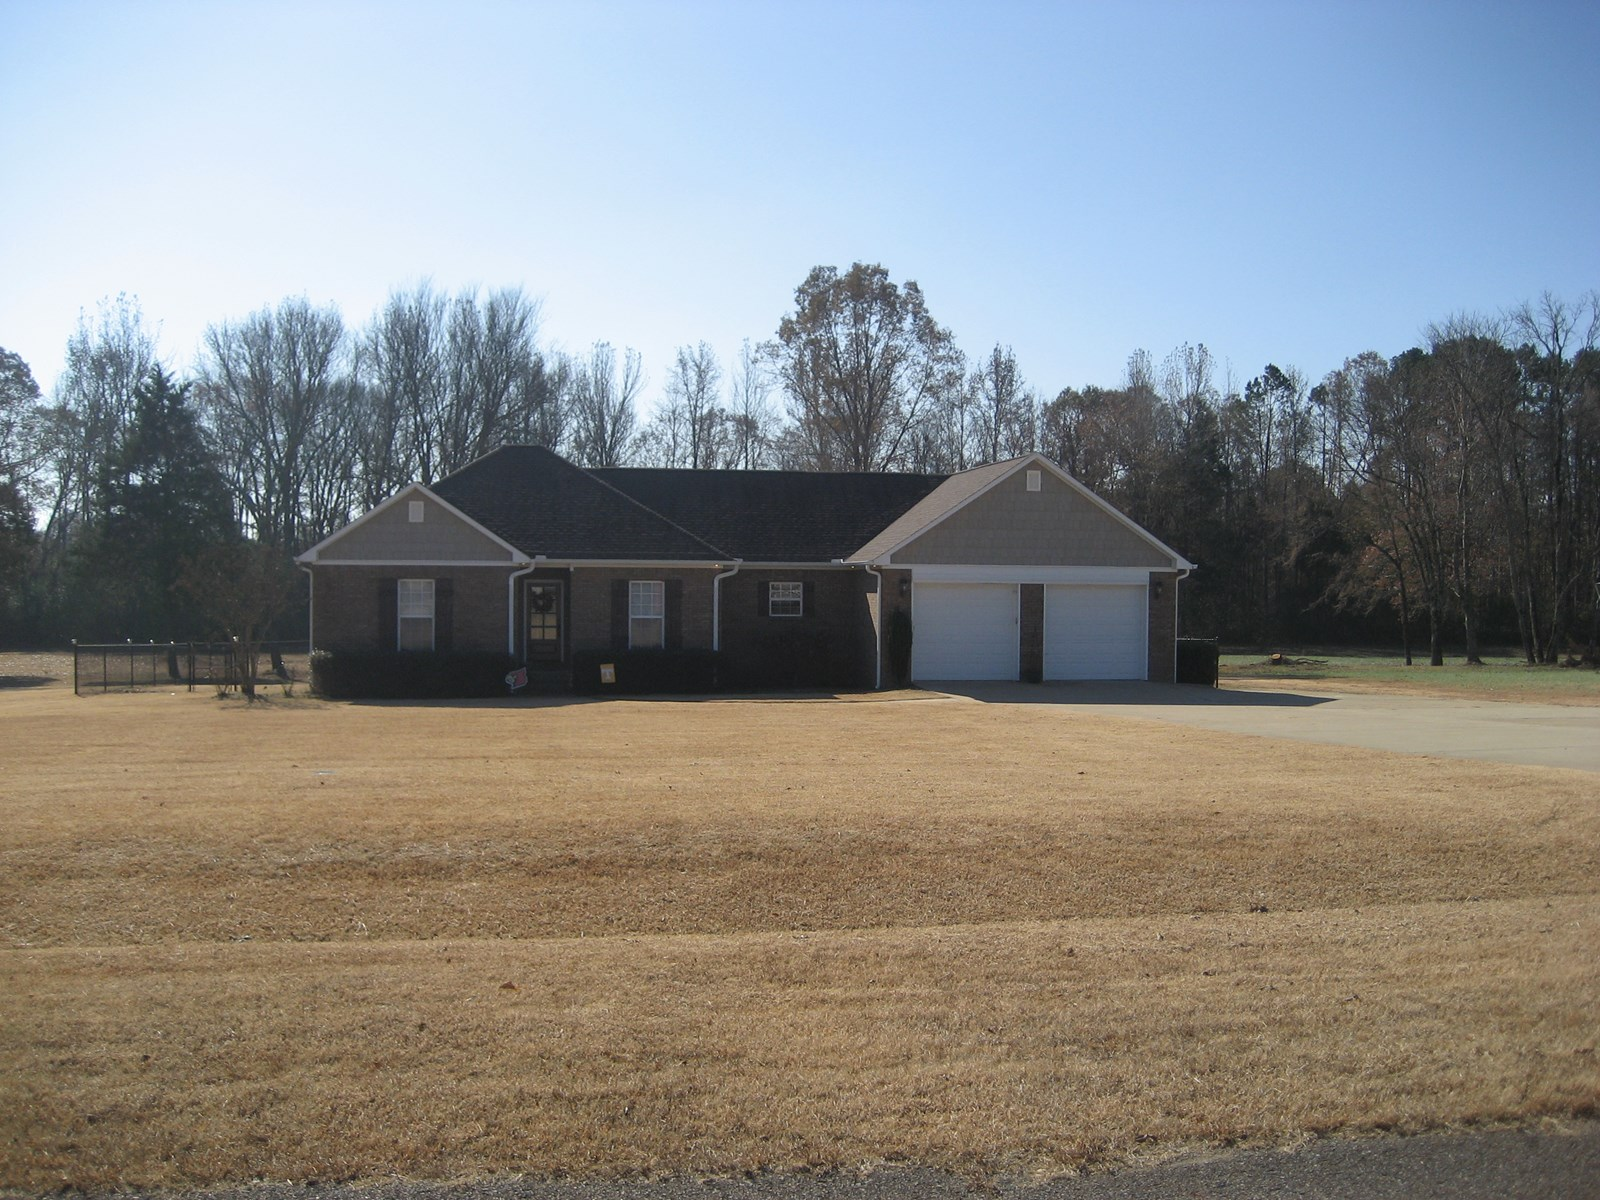 3 BEDROOM BRICK HOME FOR SALE IN ADAMSVILLE, TN